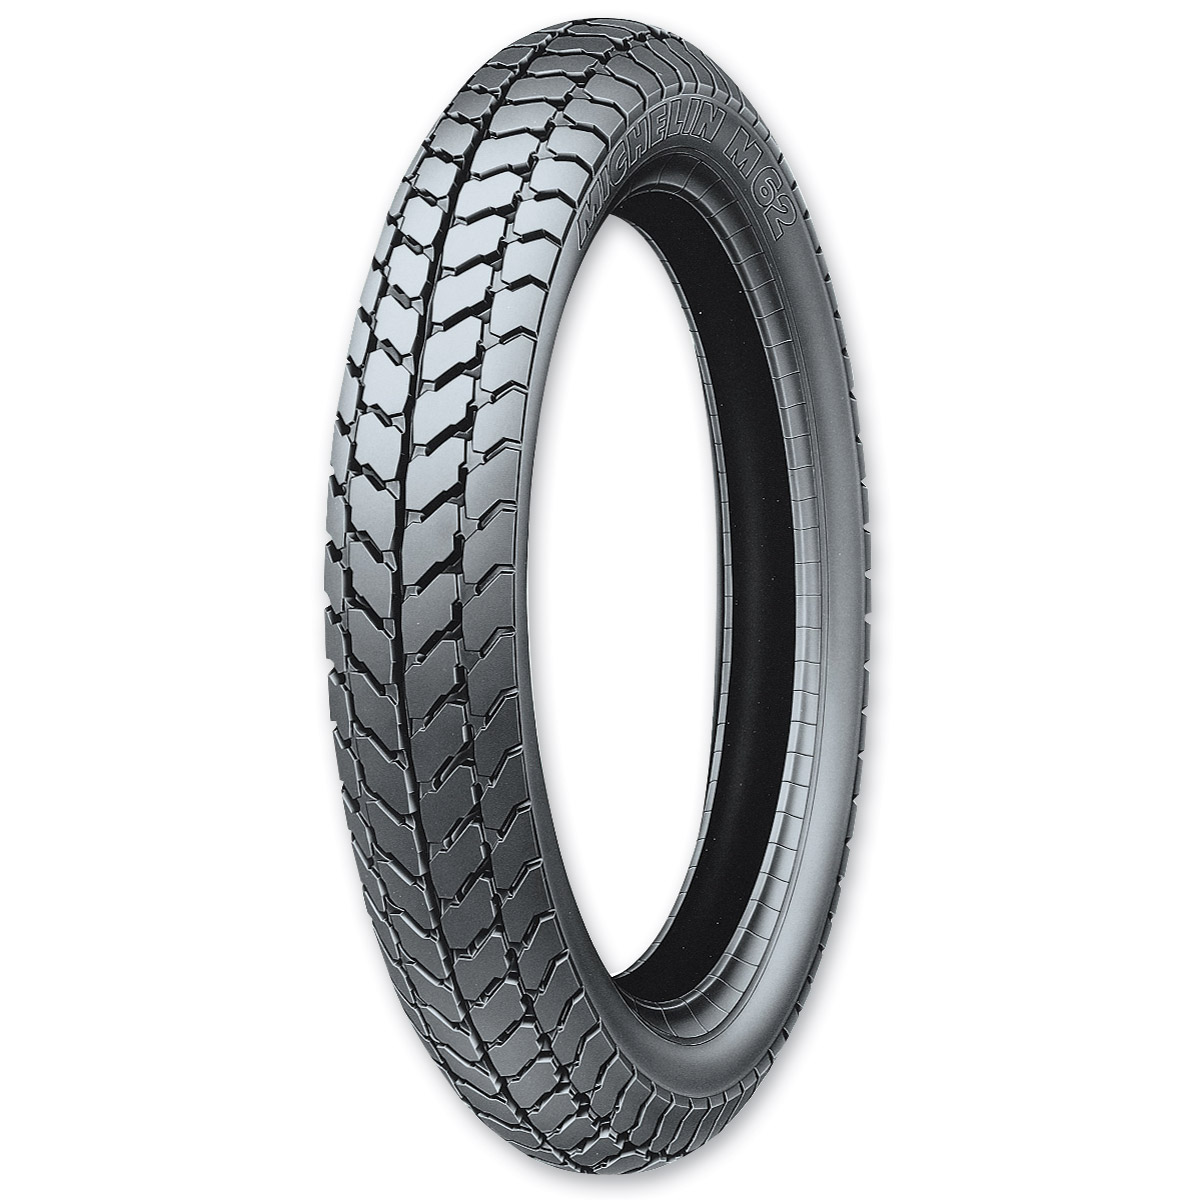 Michelin M62 Gazelle 2.50-17 Front/Rear Tire